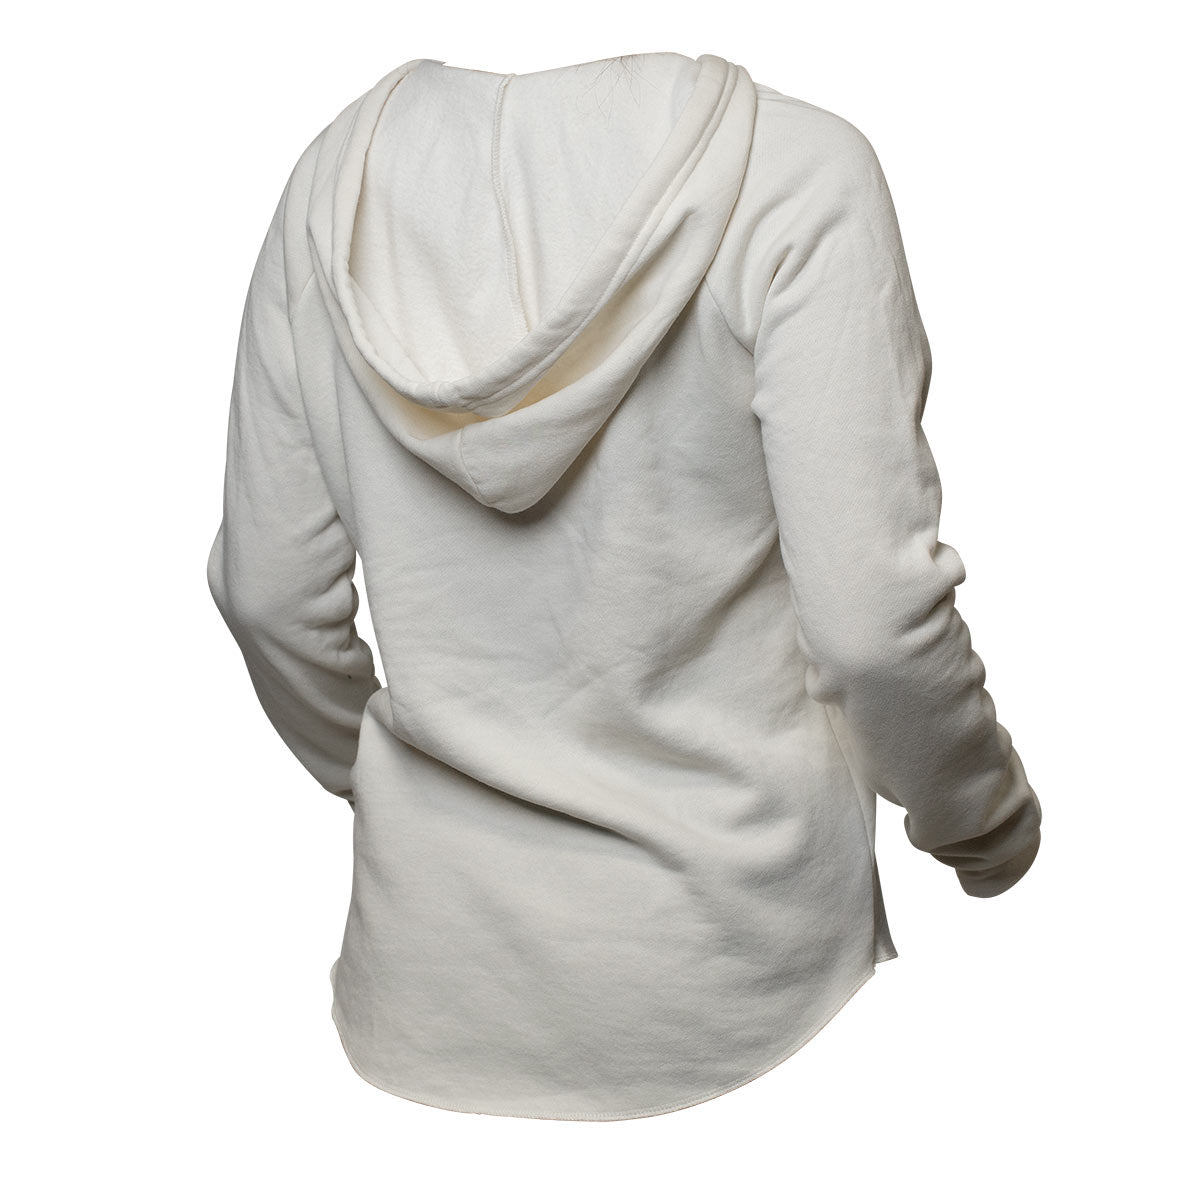 Daydreamer Women's Hooded Pullover - Bone